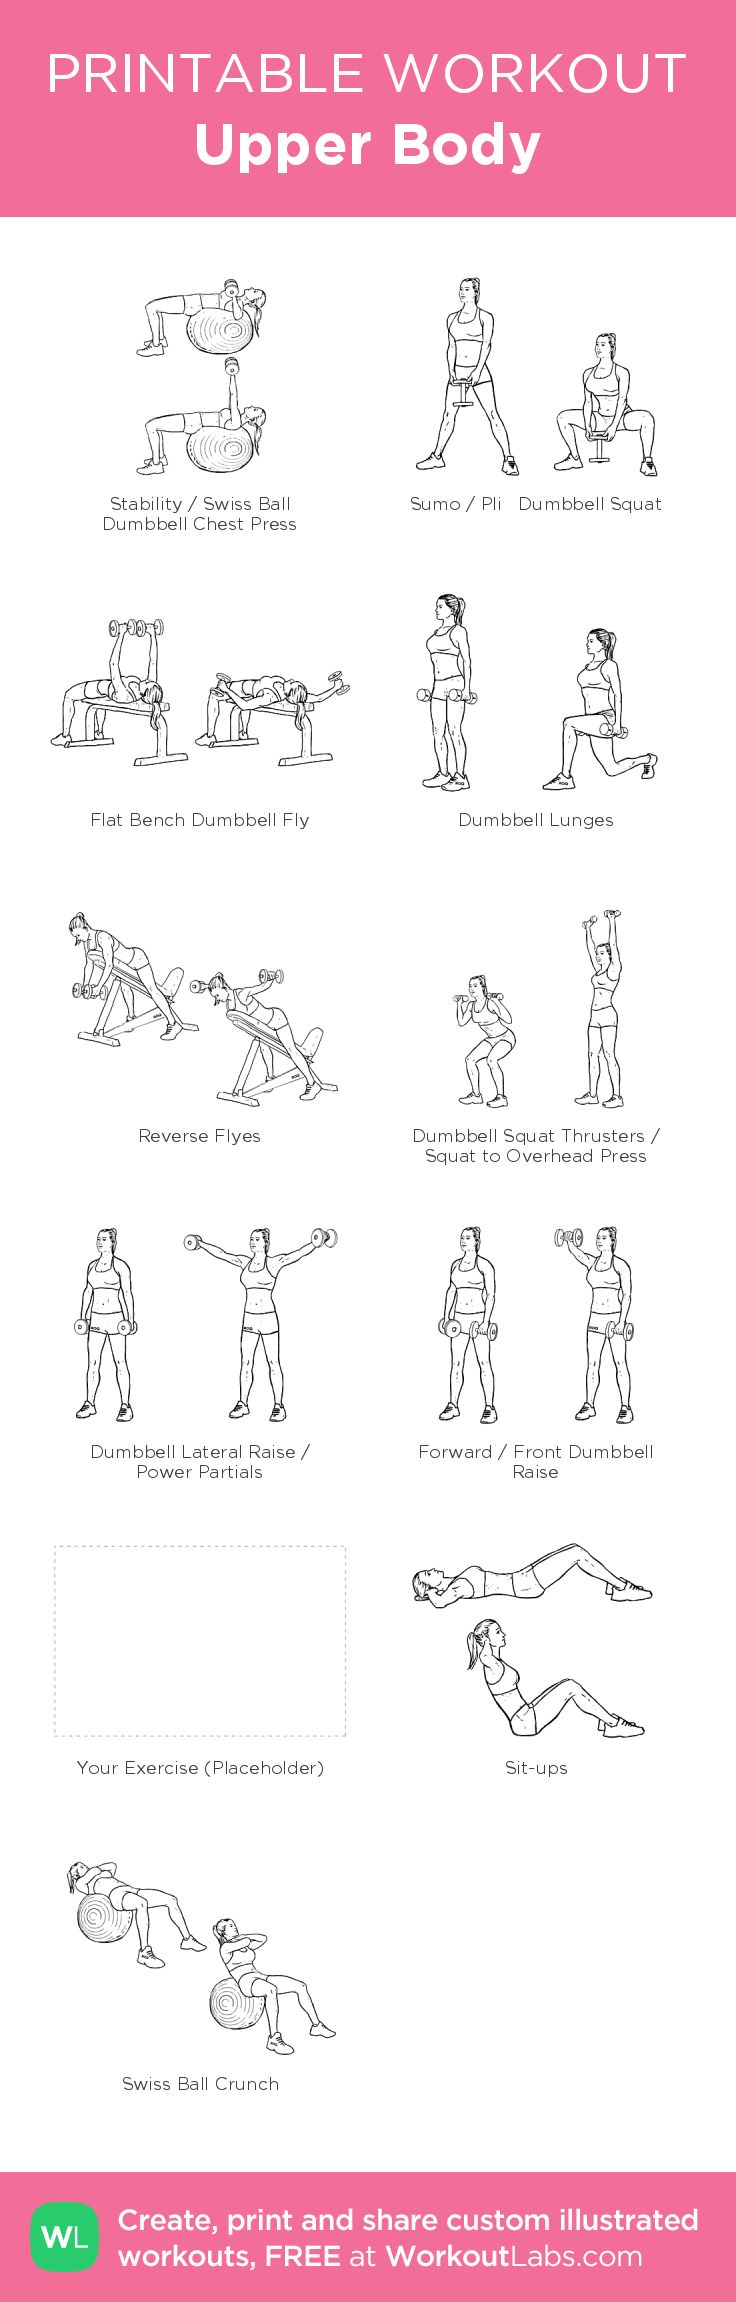 Upper Body: my visual workout created at WorkoutLabs.com • Click through to customize and download as a FREE PDF! #customworkout